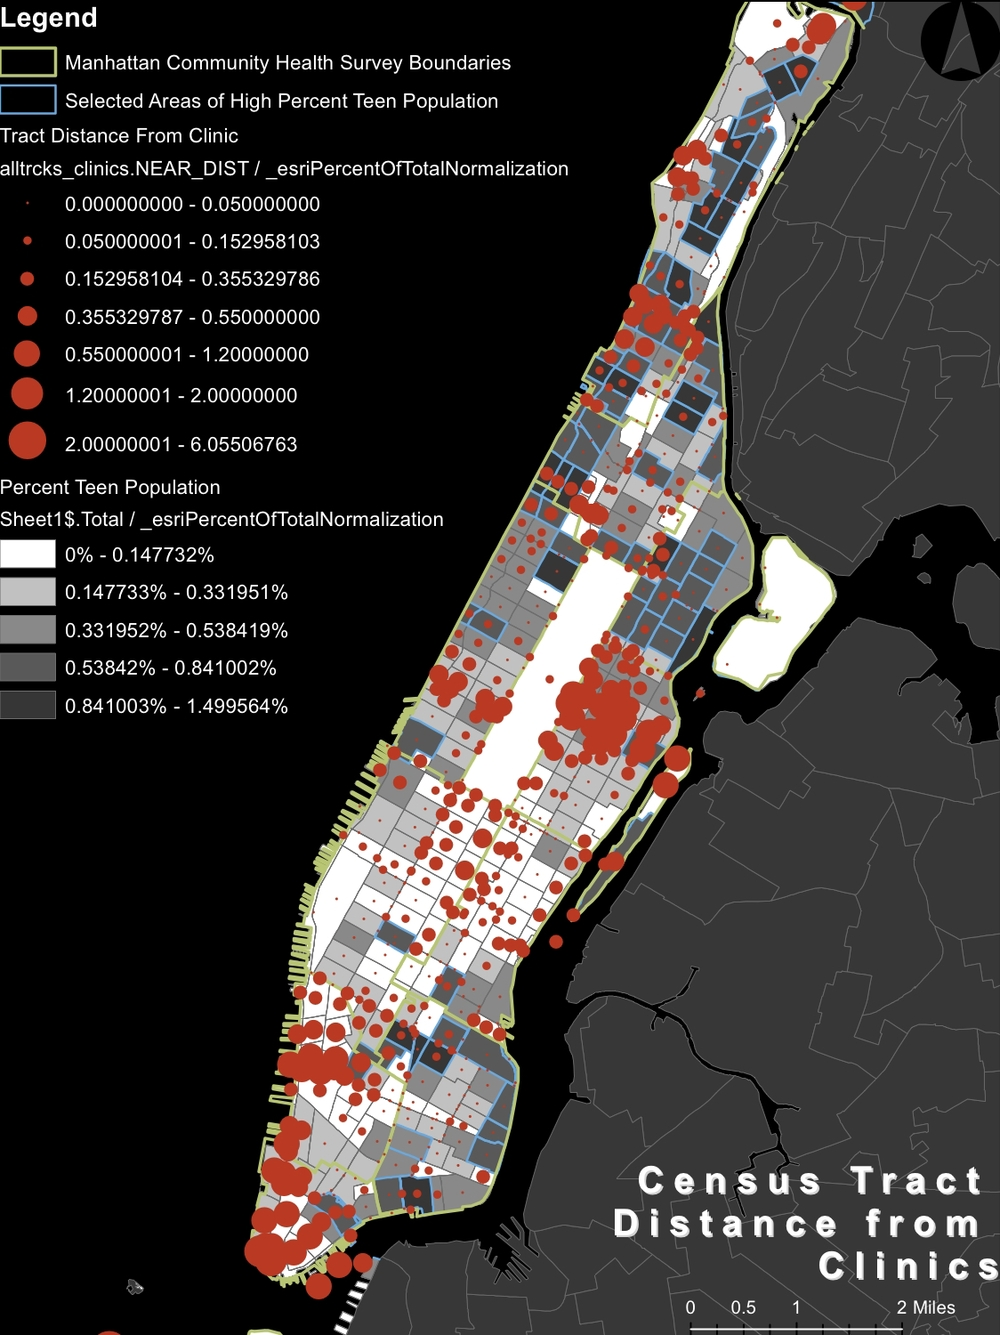 NYC Health Clinic Accessibility   NYC sexual health clinic distance from census tract selected areas of high percent teen population, laid over percent teen population.